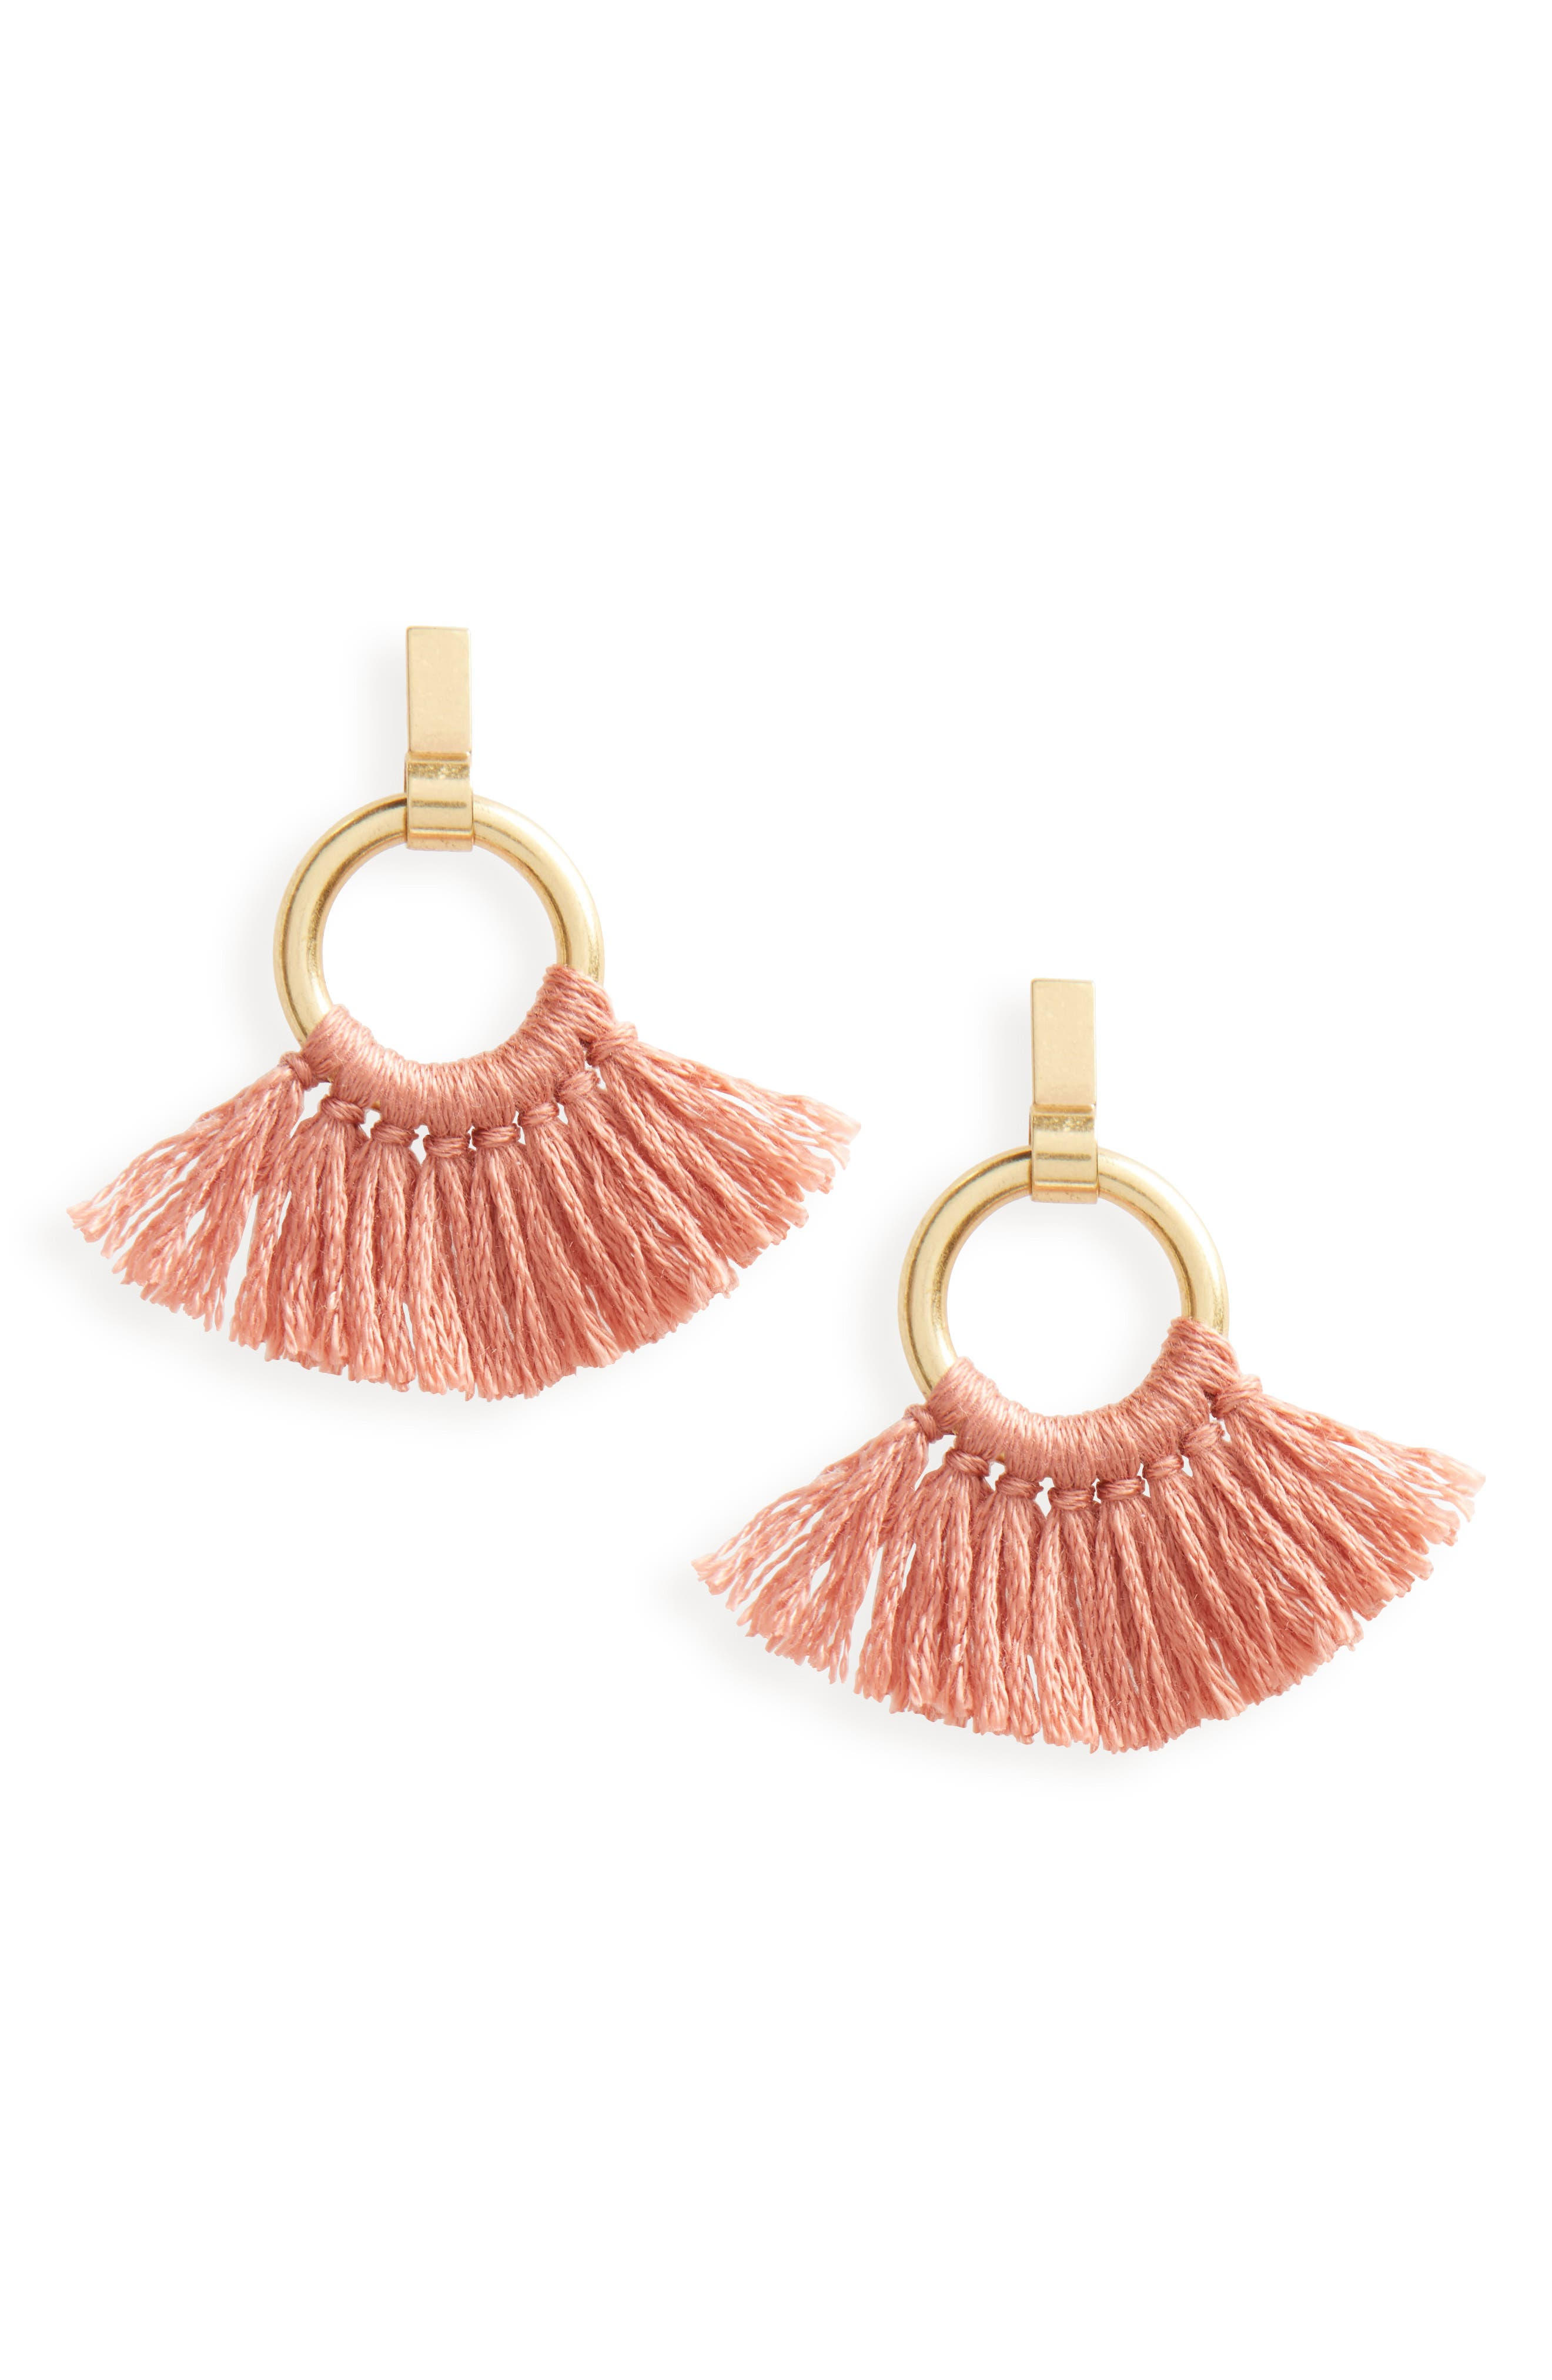 Tassel Wrap Hoop Earrings,                             Main thumbnail 1, color,                             710